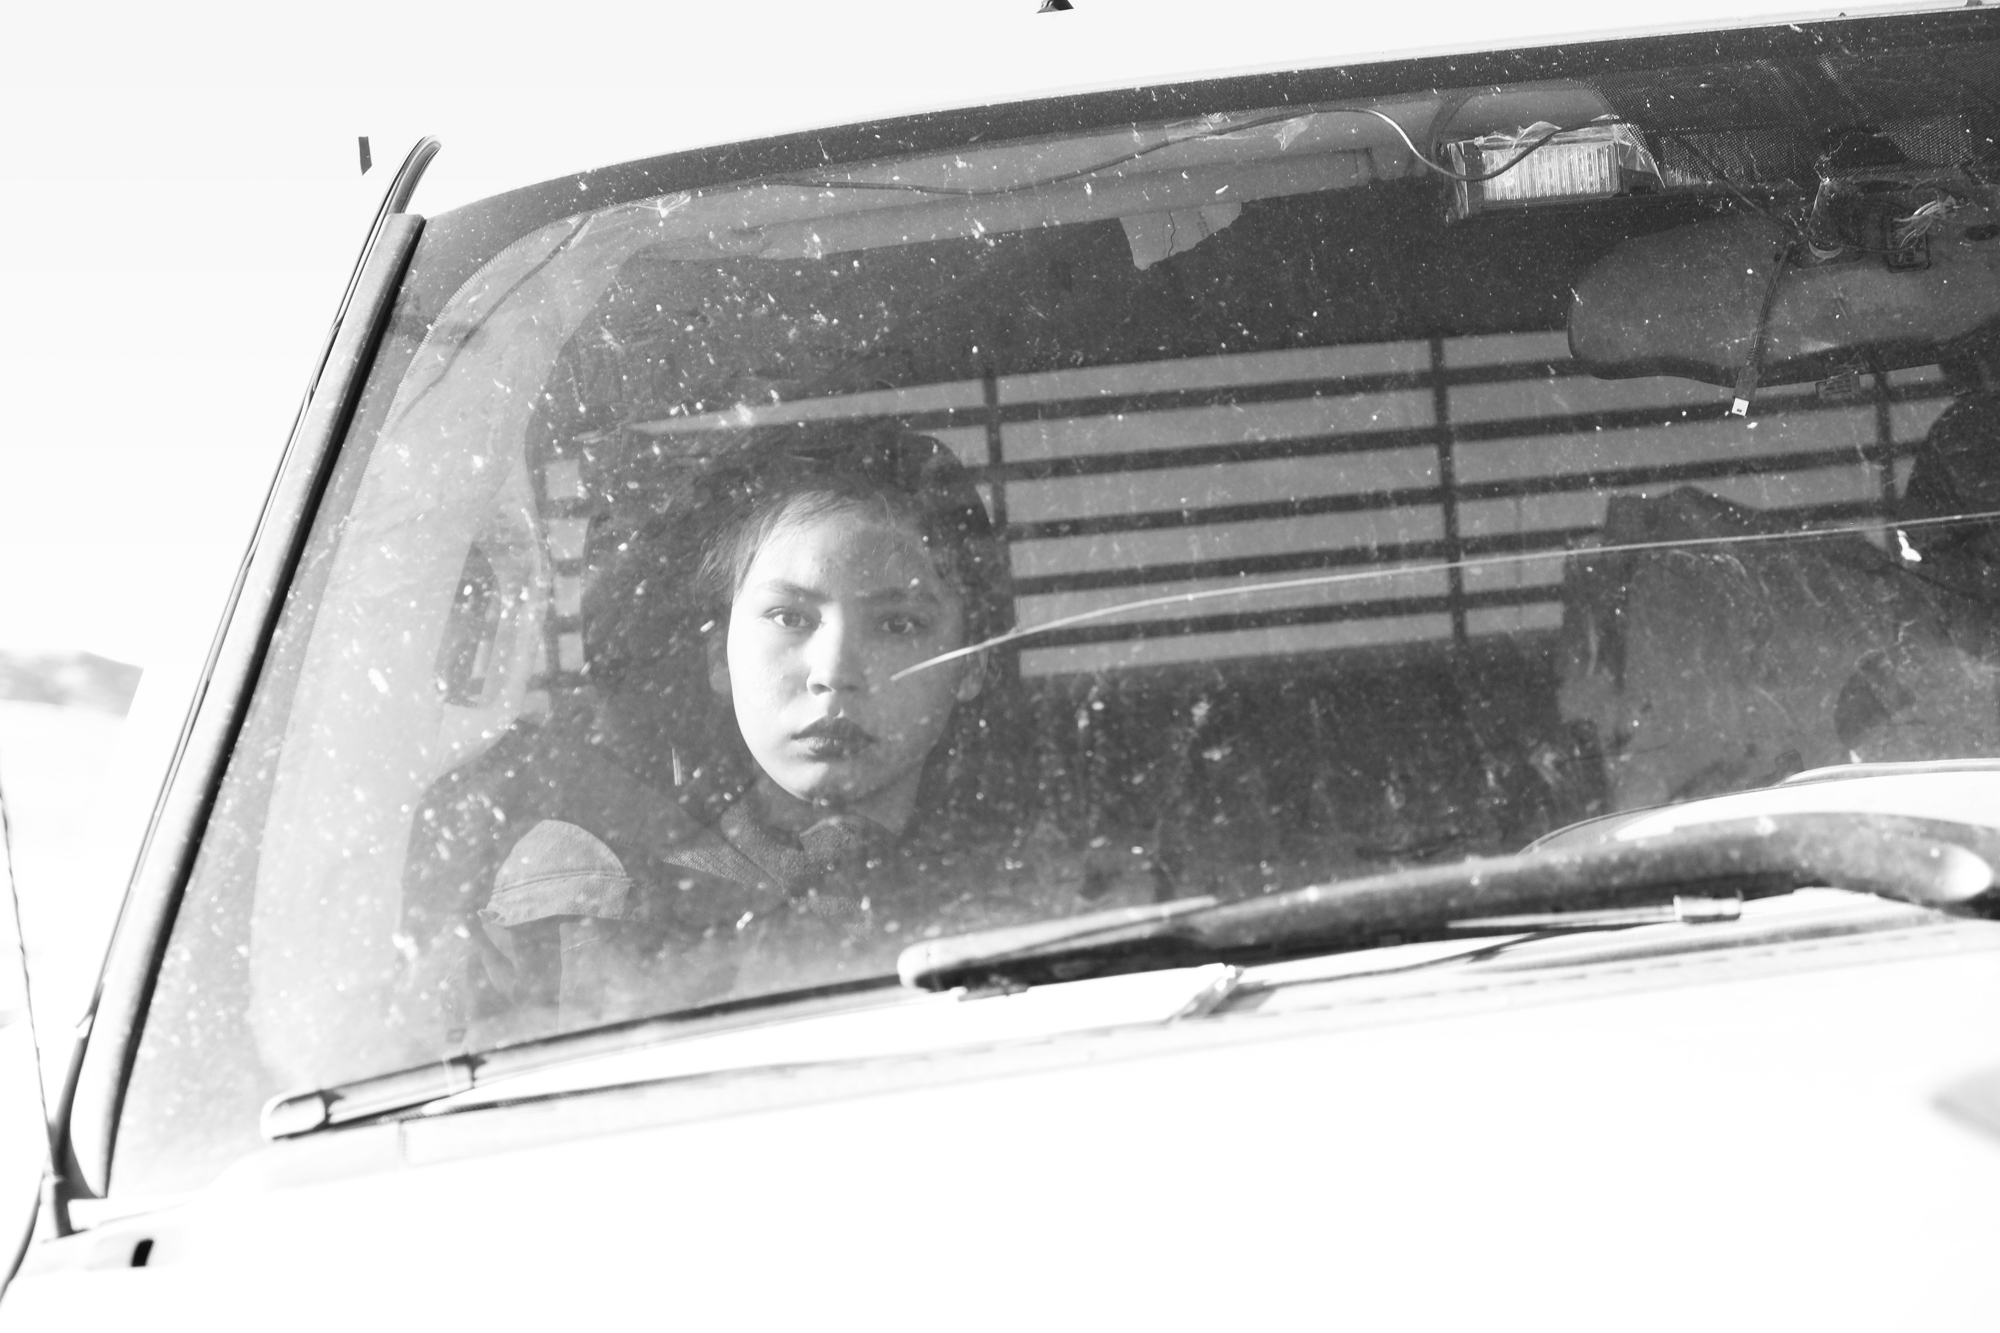 There is resilience in the eyes of this young water protector Destiny hailing from the Rosebud Sioux tribe of North Dakota. After two hours locked down to machinery constructing the Trans-Pecos pipeline, she was taken into custody by the Presidio County Police Department.